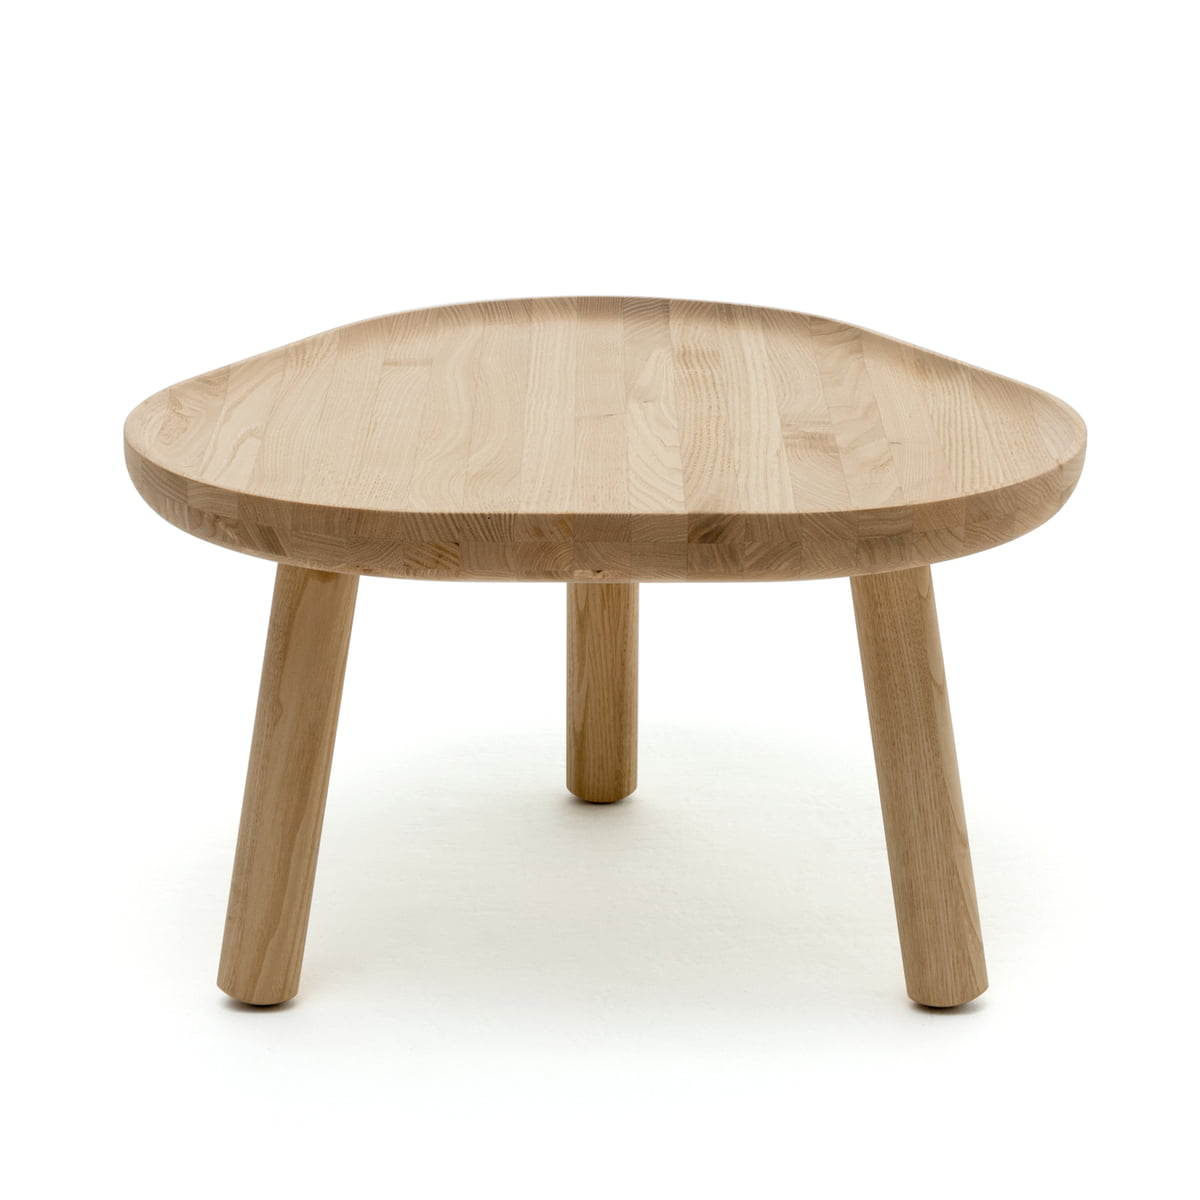 Soft triangle table by karimoku new standard the karimoku new standard soft triangle coffee table in natural geotapseo Choice Image